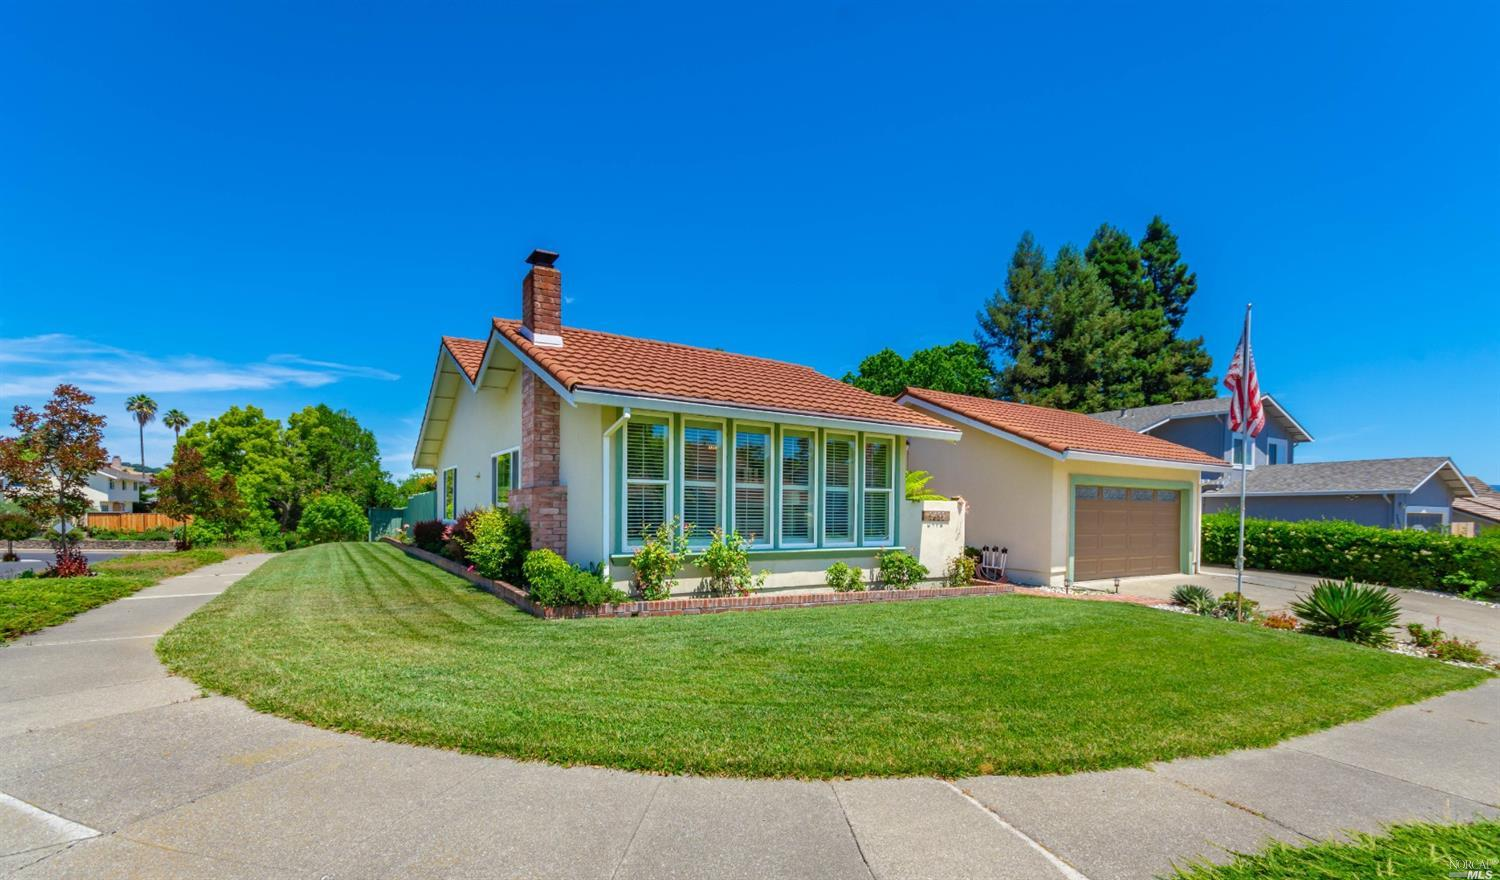 Situated on a large corner lot in the desirable Browns Valley neighborhood sits 3492 Twin Oaks Court